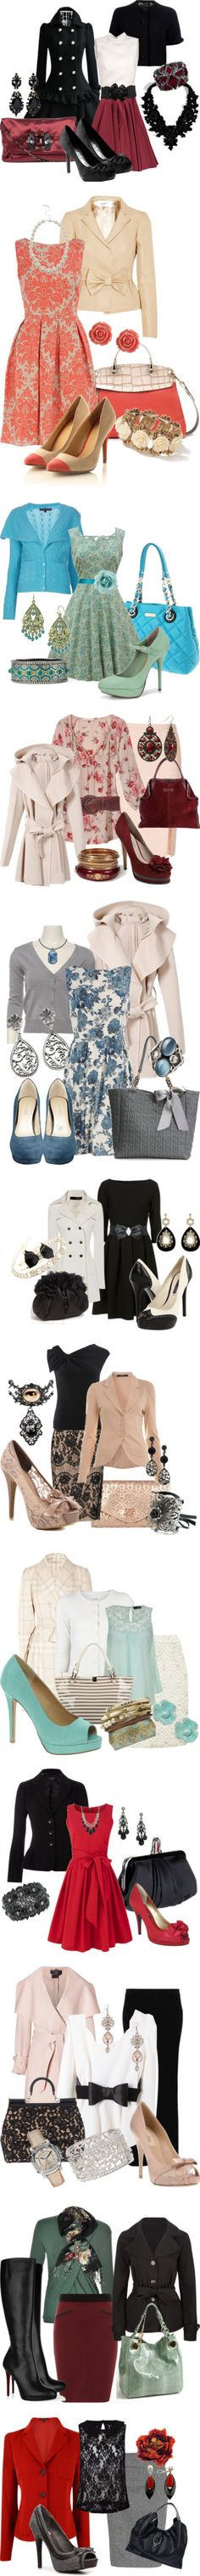 """""""Let's Play Dress Up"""" by stylesbyjoey ❤ liked on Polyvore"""